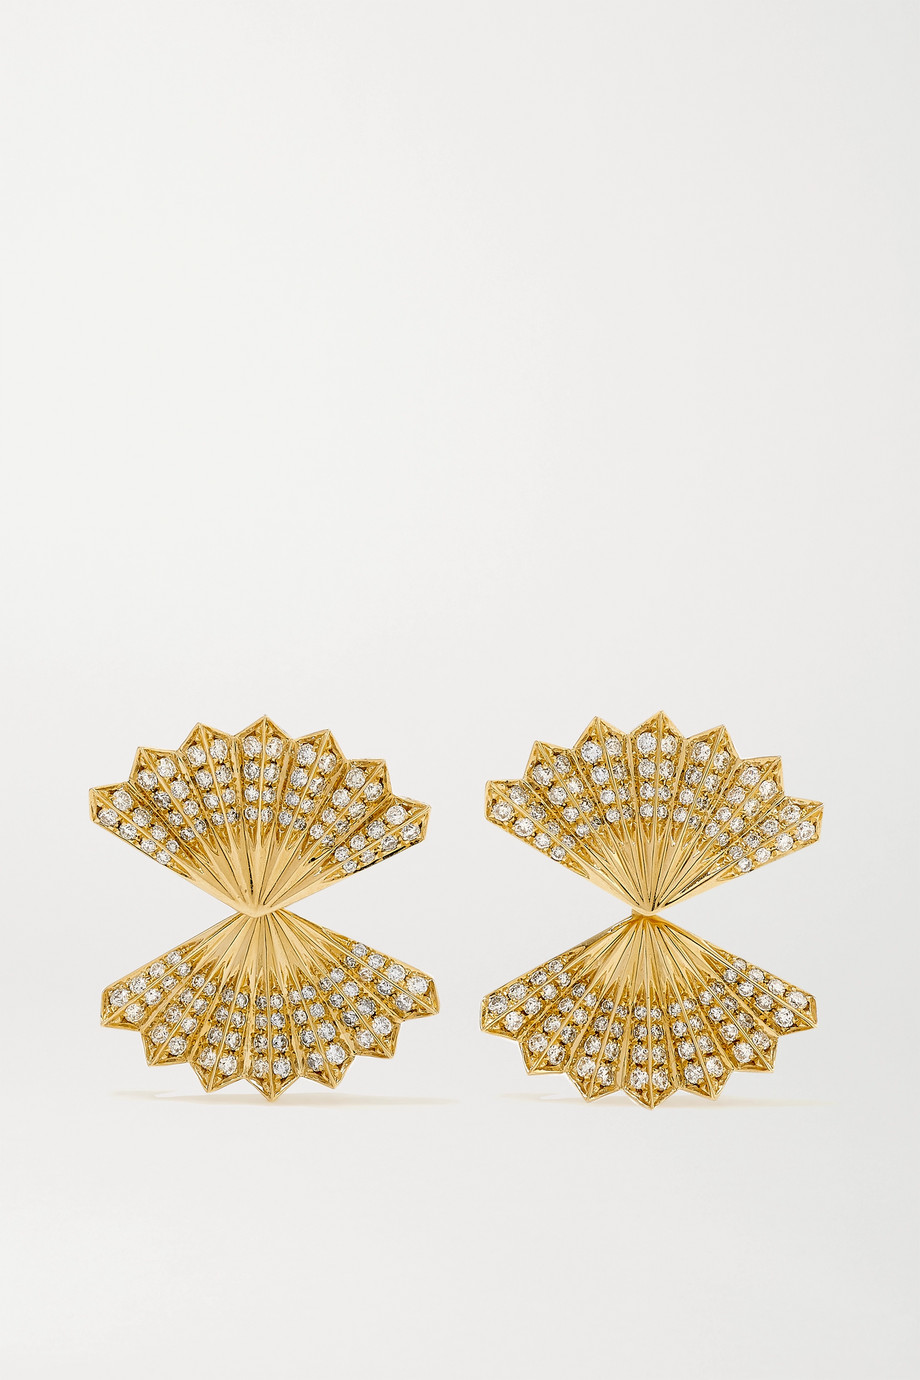 Anita Ko 18-karat gold diamond earrings